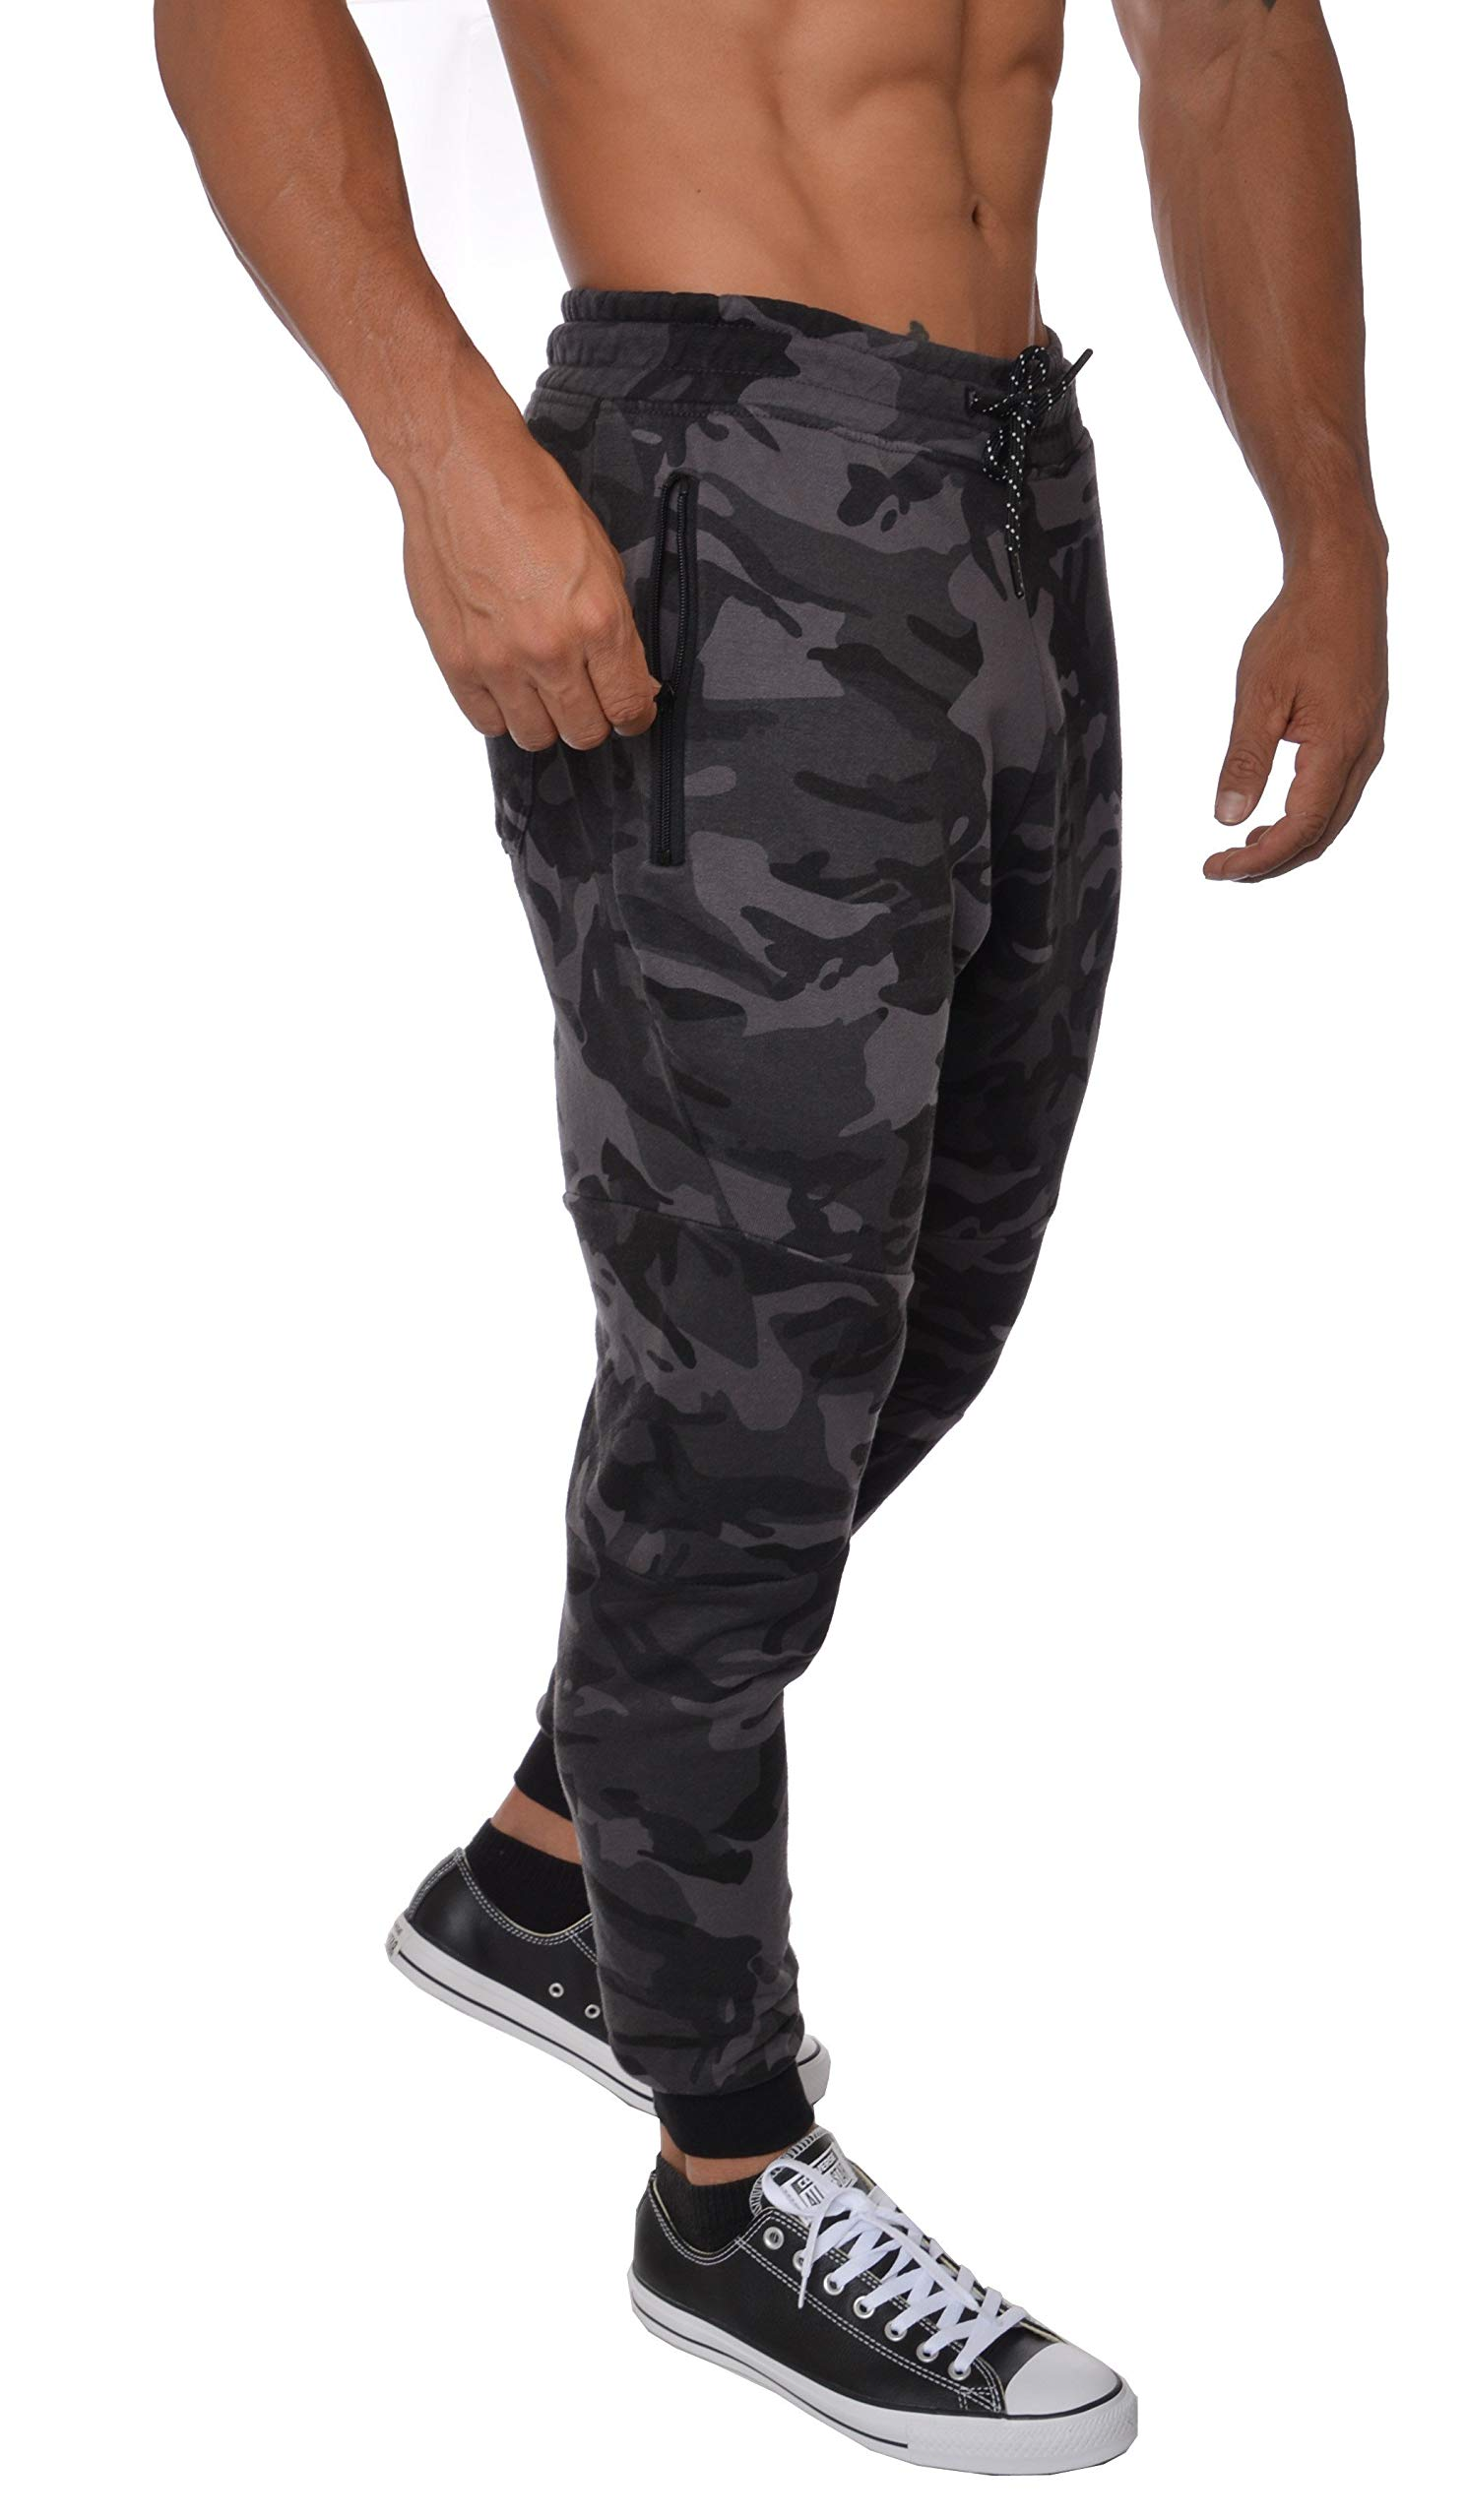 c550f7499c5b4 YoungLA French Terry Cotton Sweatpants Jogger Pants